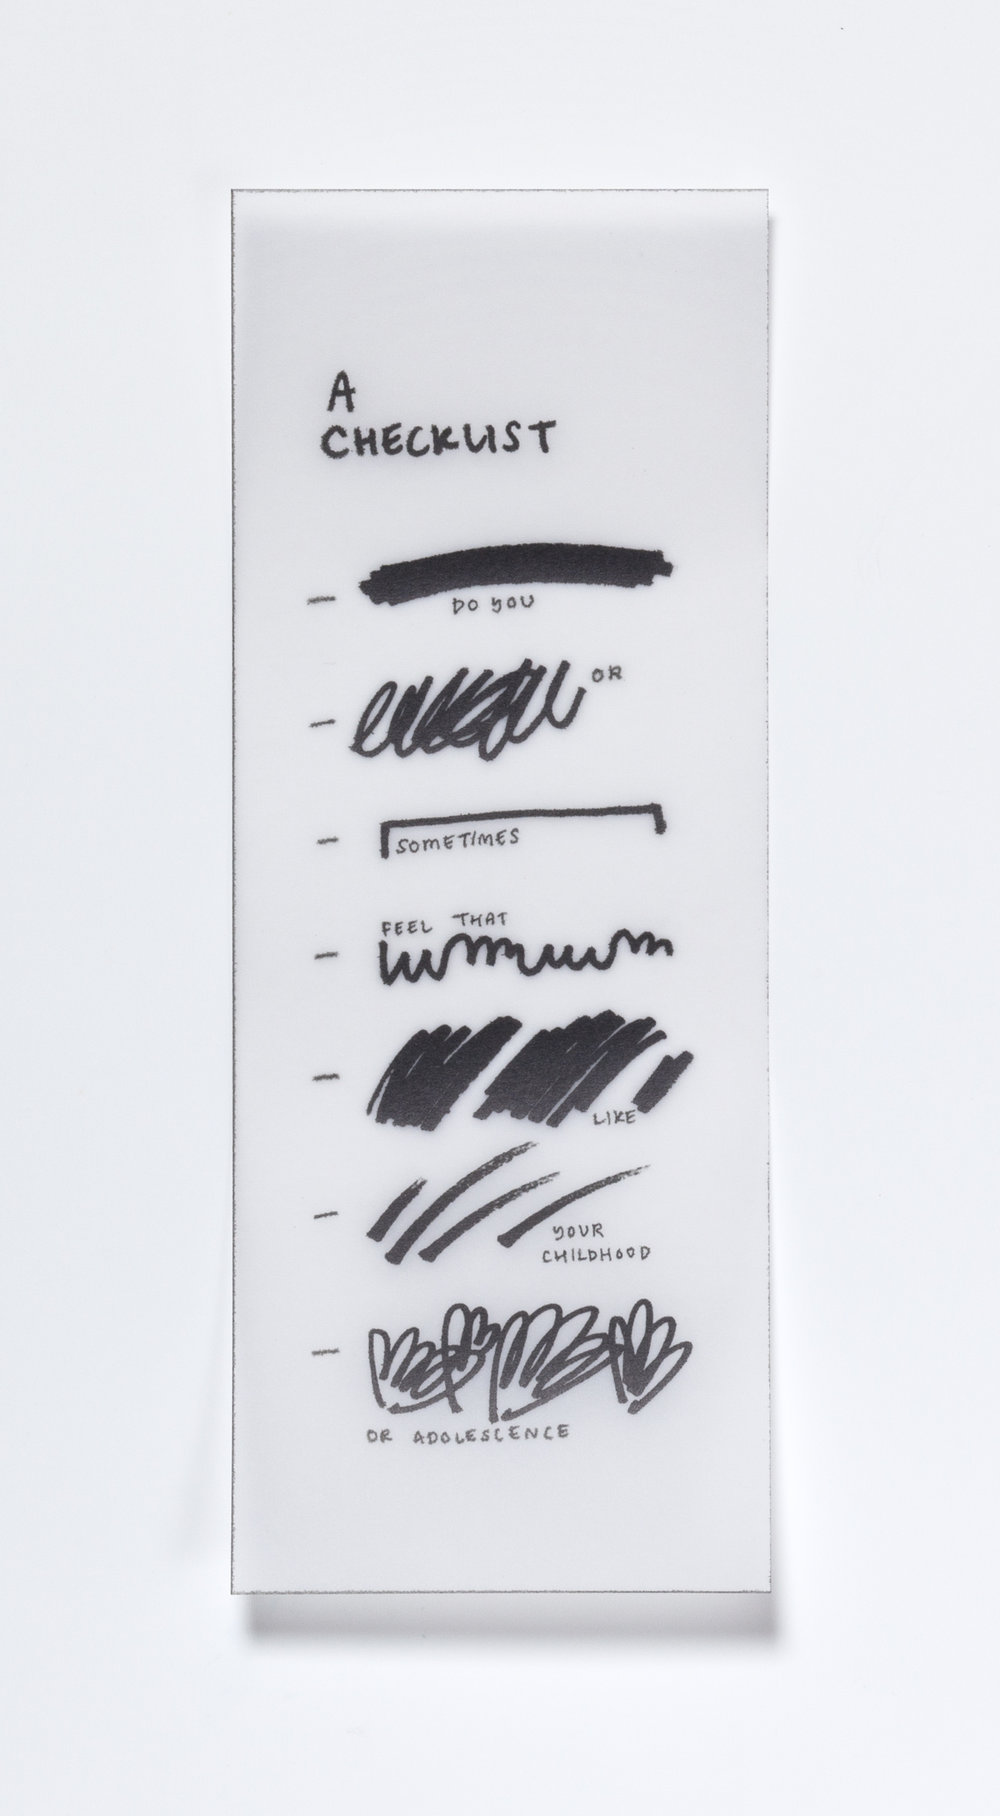 A Checklist,  2018  Inkjet print on paper 8 7/16 x 3 1/4 inches